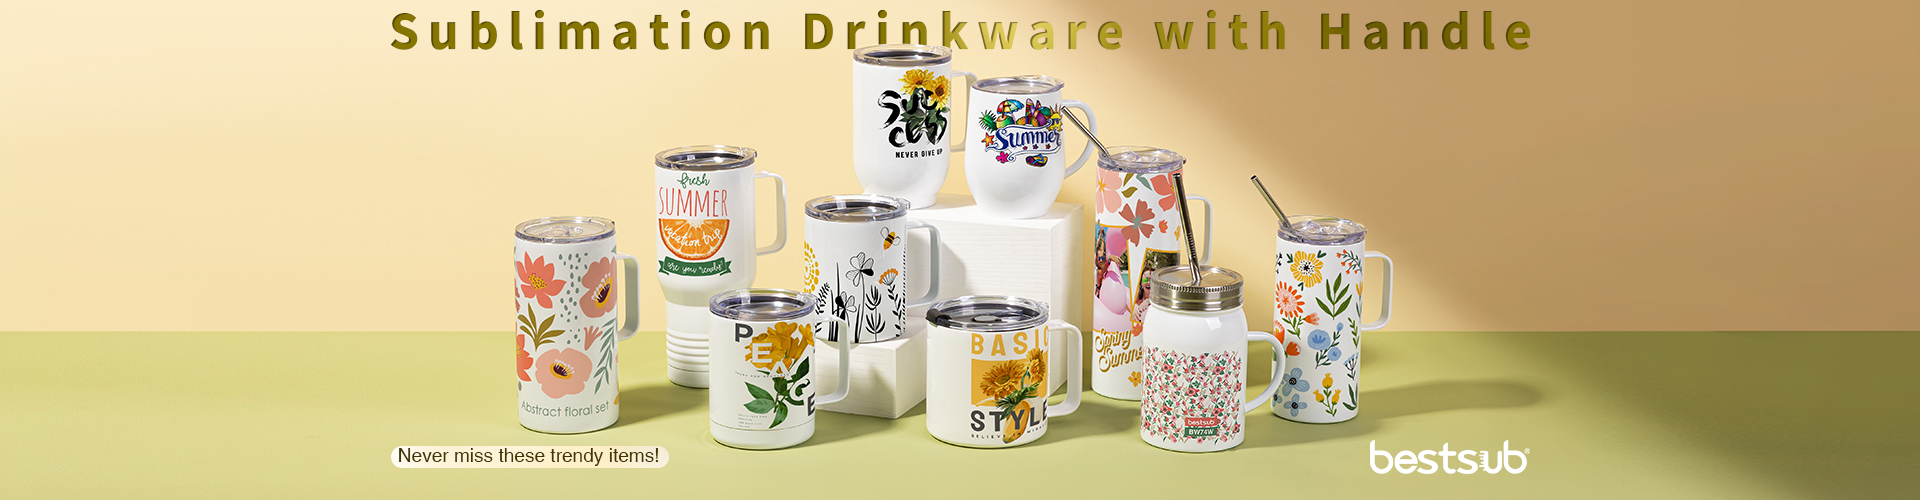 2021-06-25_Sublimation_Drinkware_with_Handle_new_web